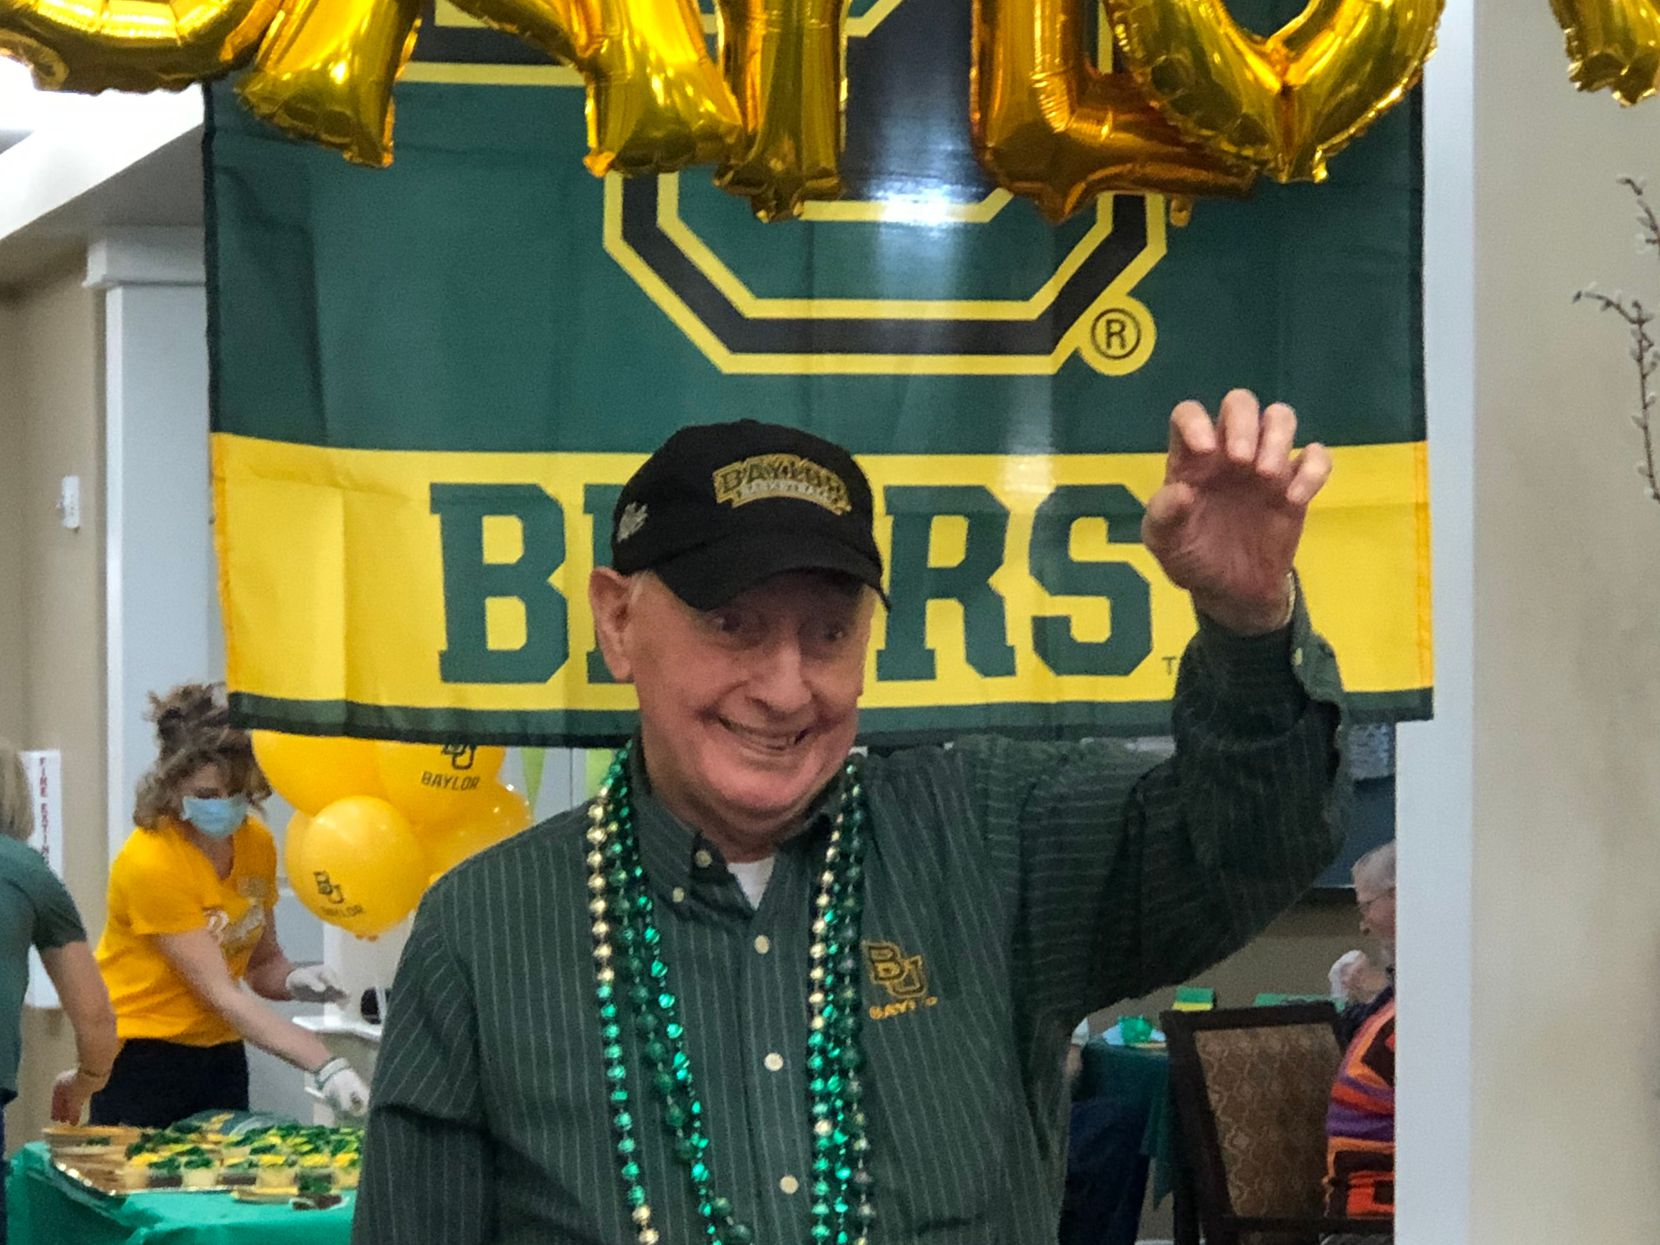 Former Baylor basketball player Bill Fleetwood celebrates during a party in his honor in March.